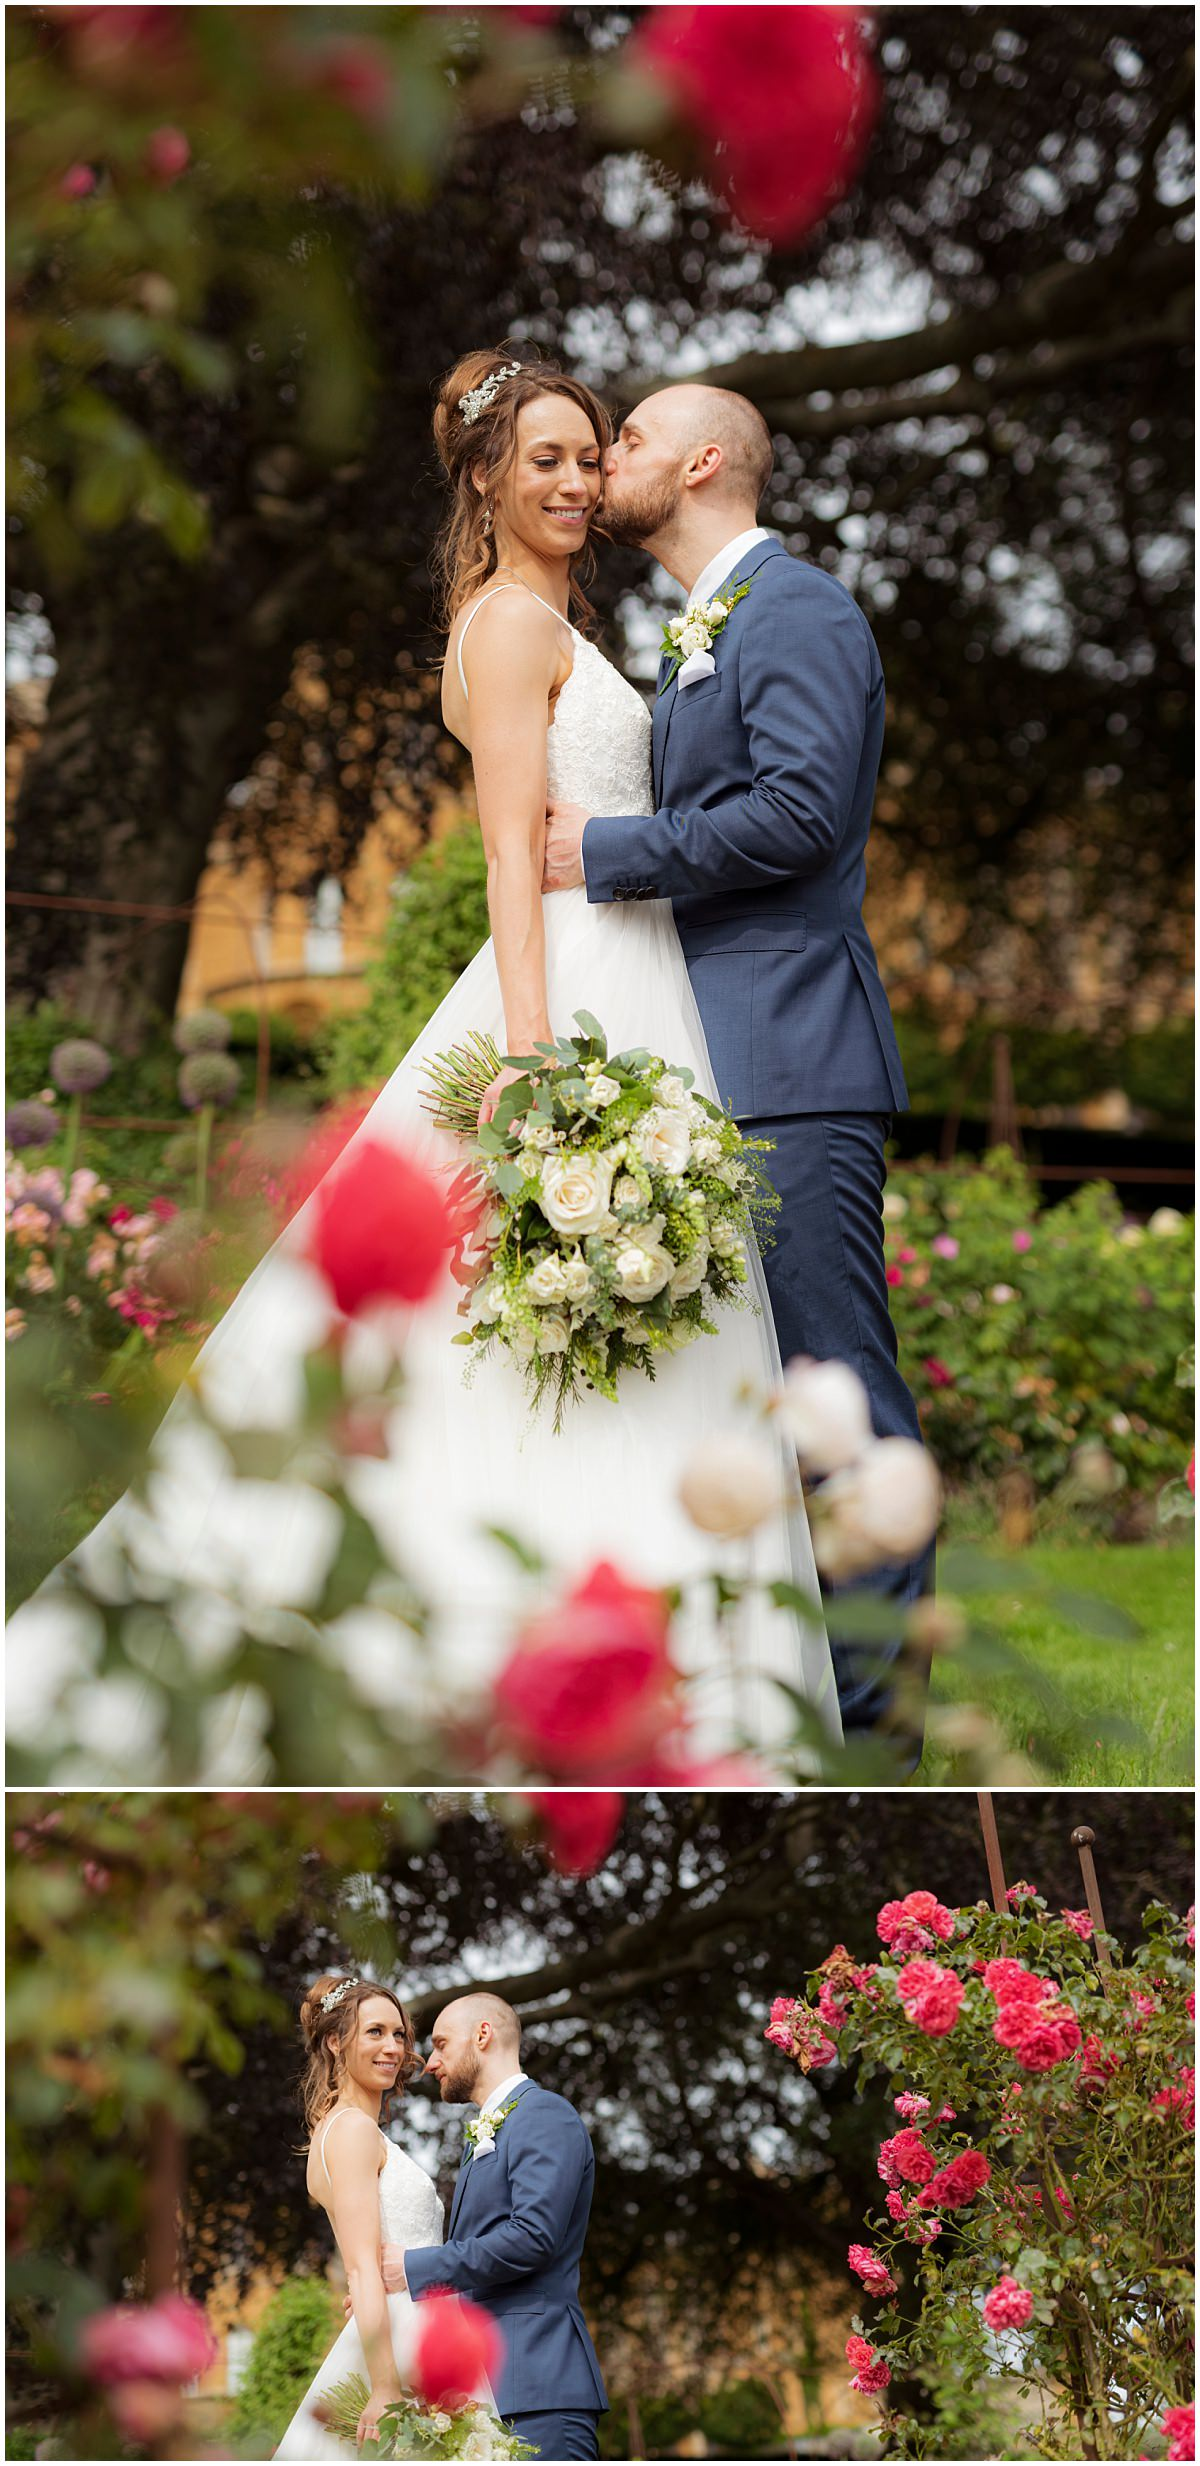 Rose garden with bride and groom